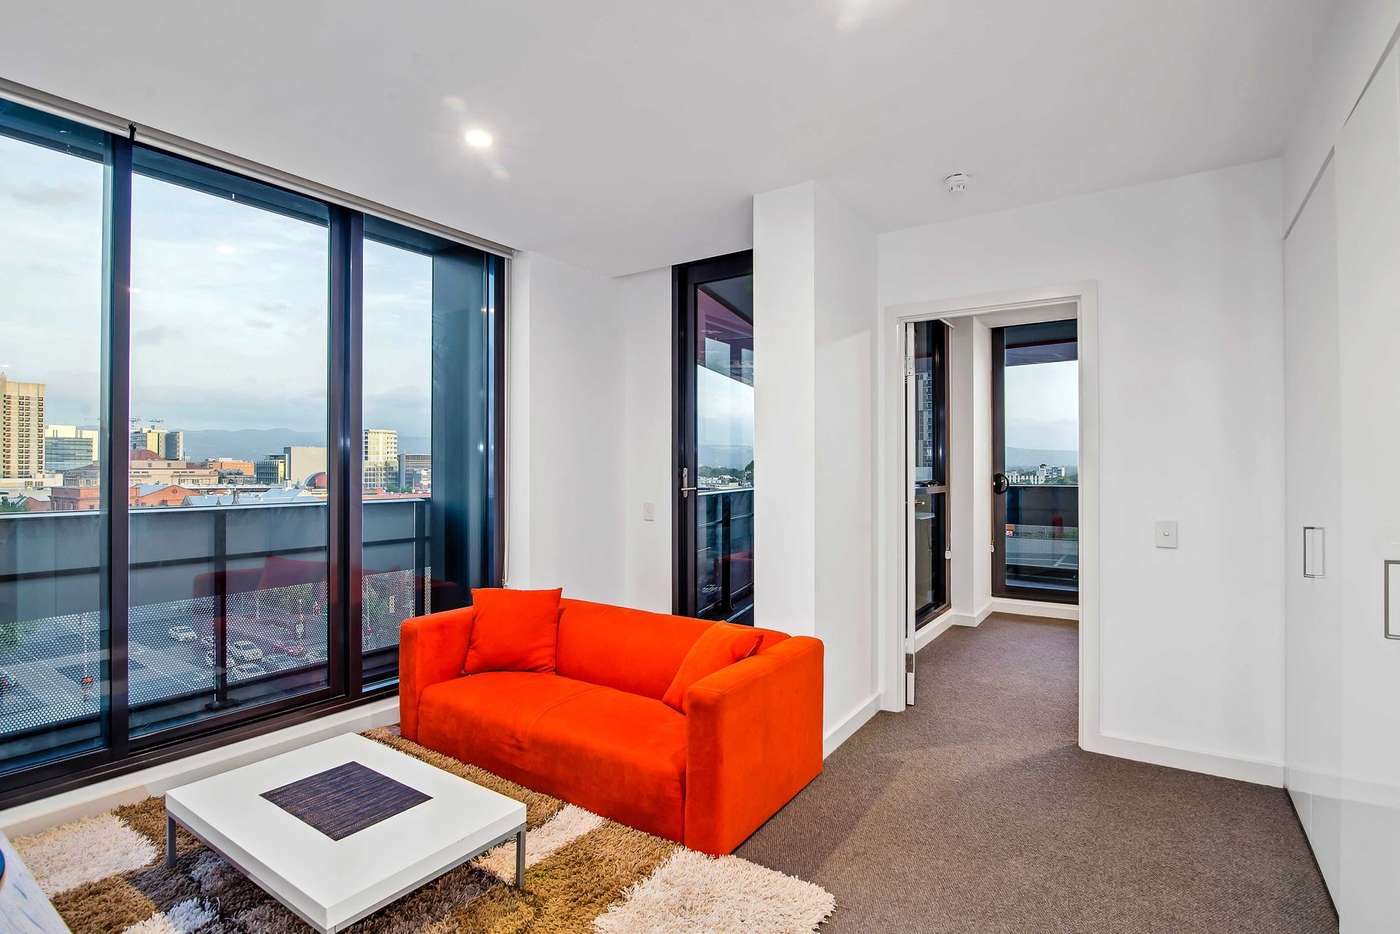 Fifth view of Homely apartment listing, 505/160 Grote Street, Adelaide SA 5000